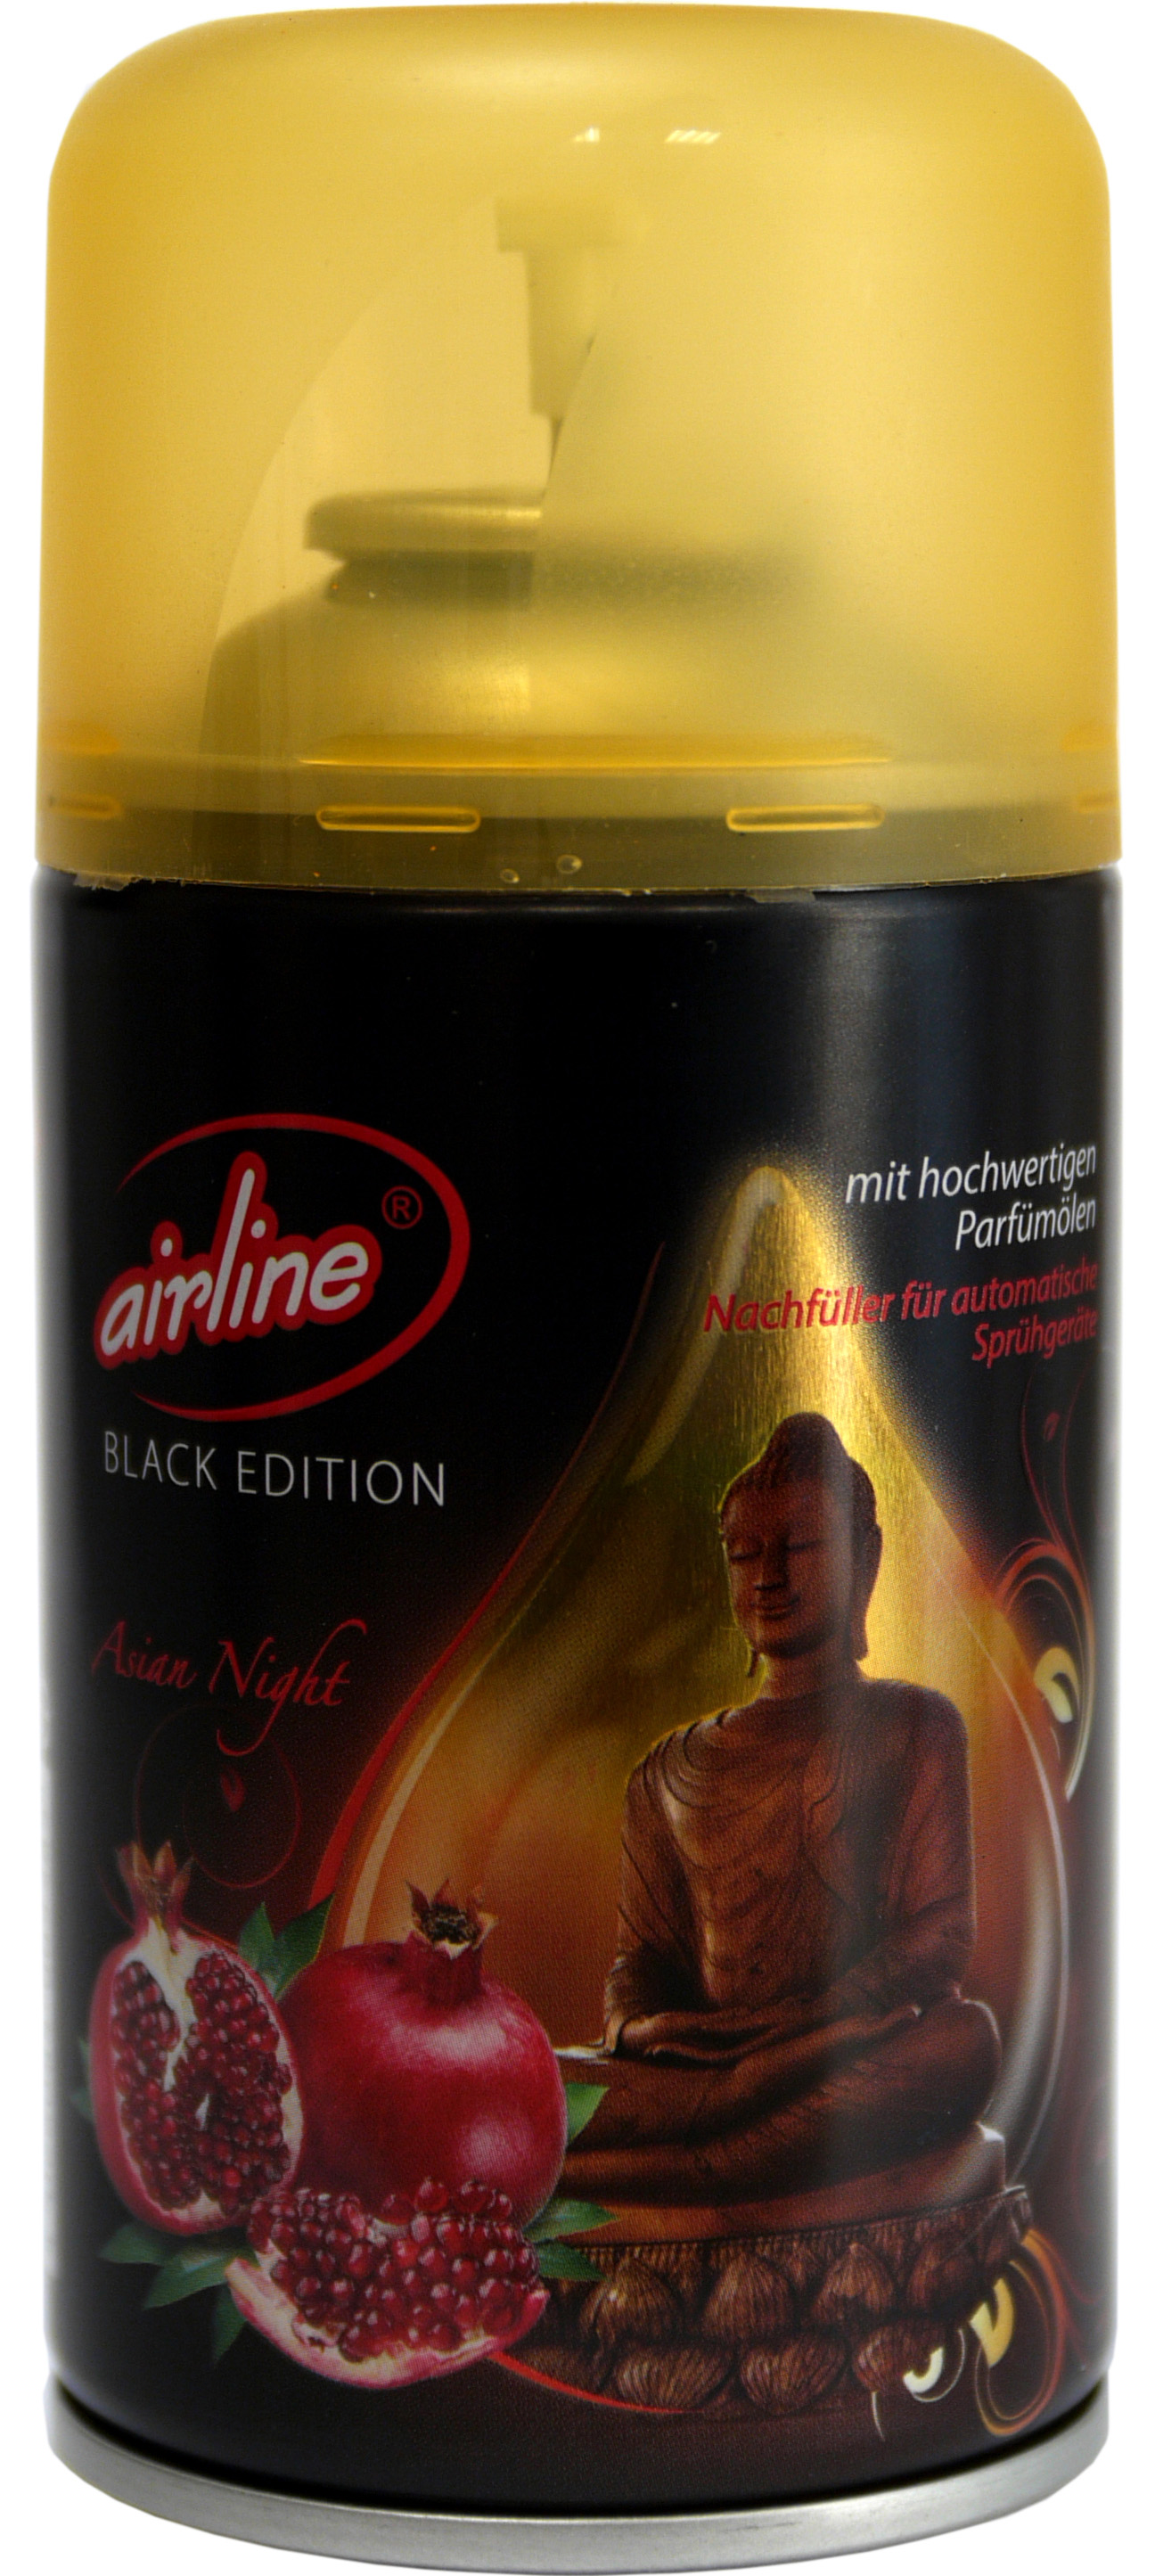 00538 - airline Black Edition Asian Night Nachfüllkartusche 250 ml